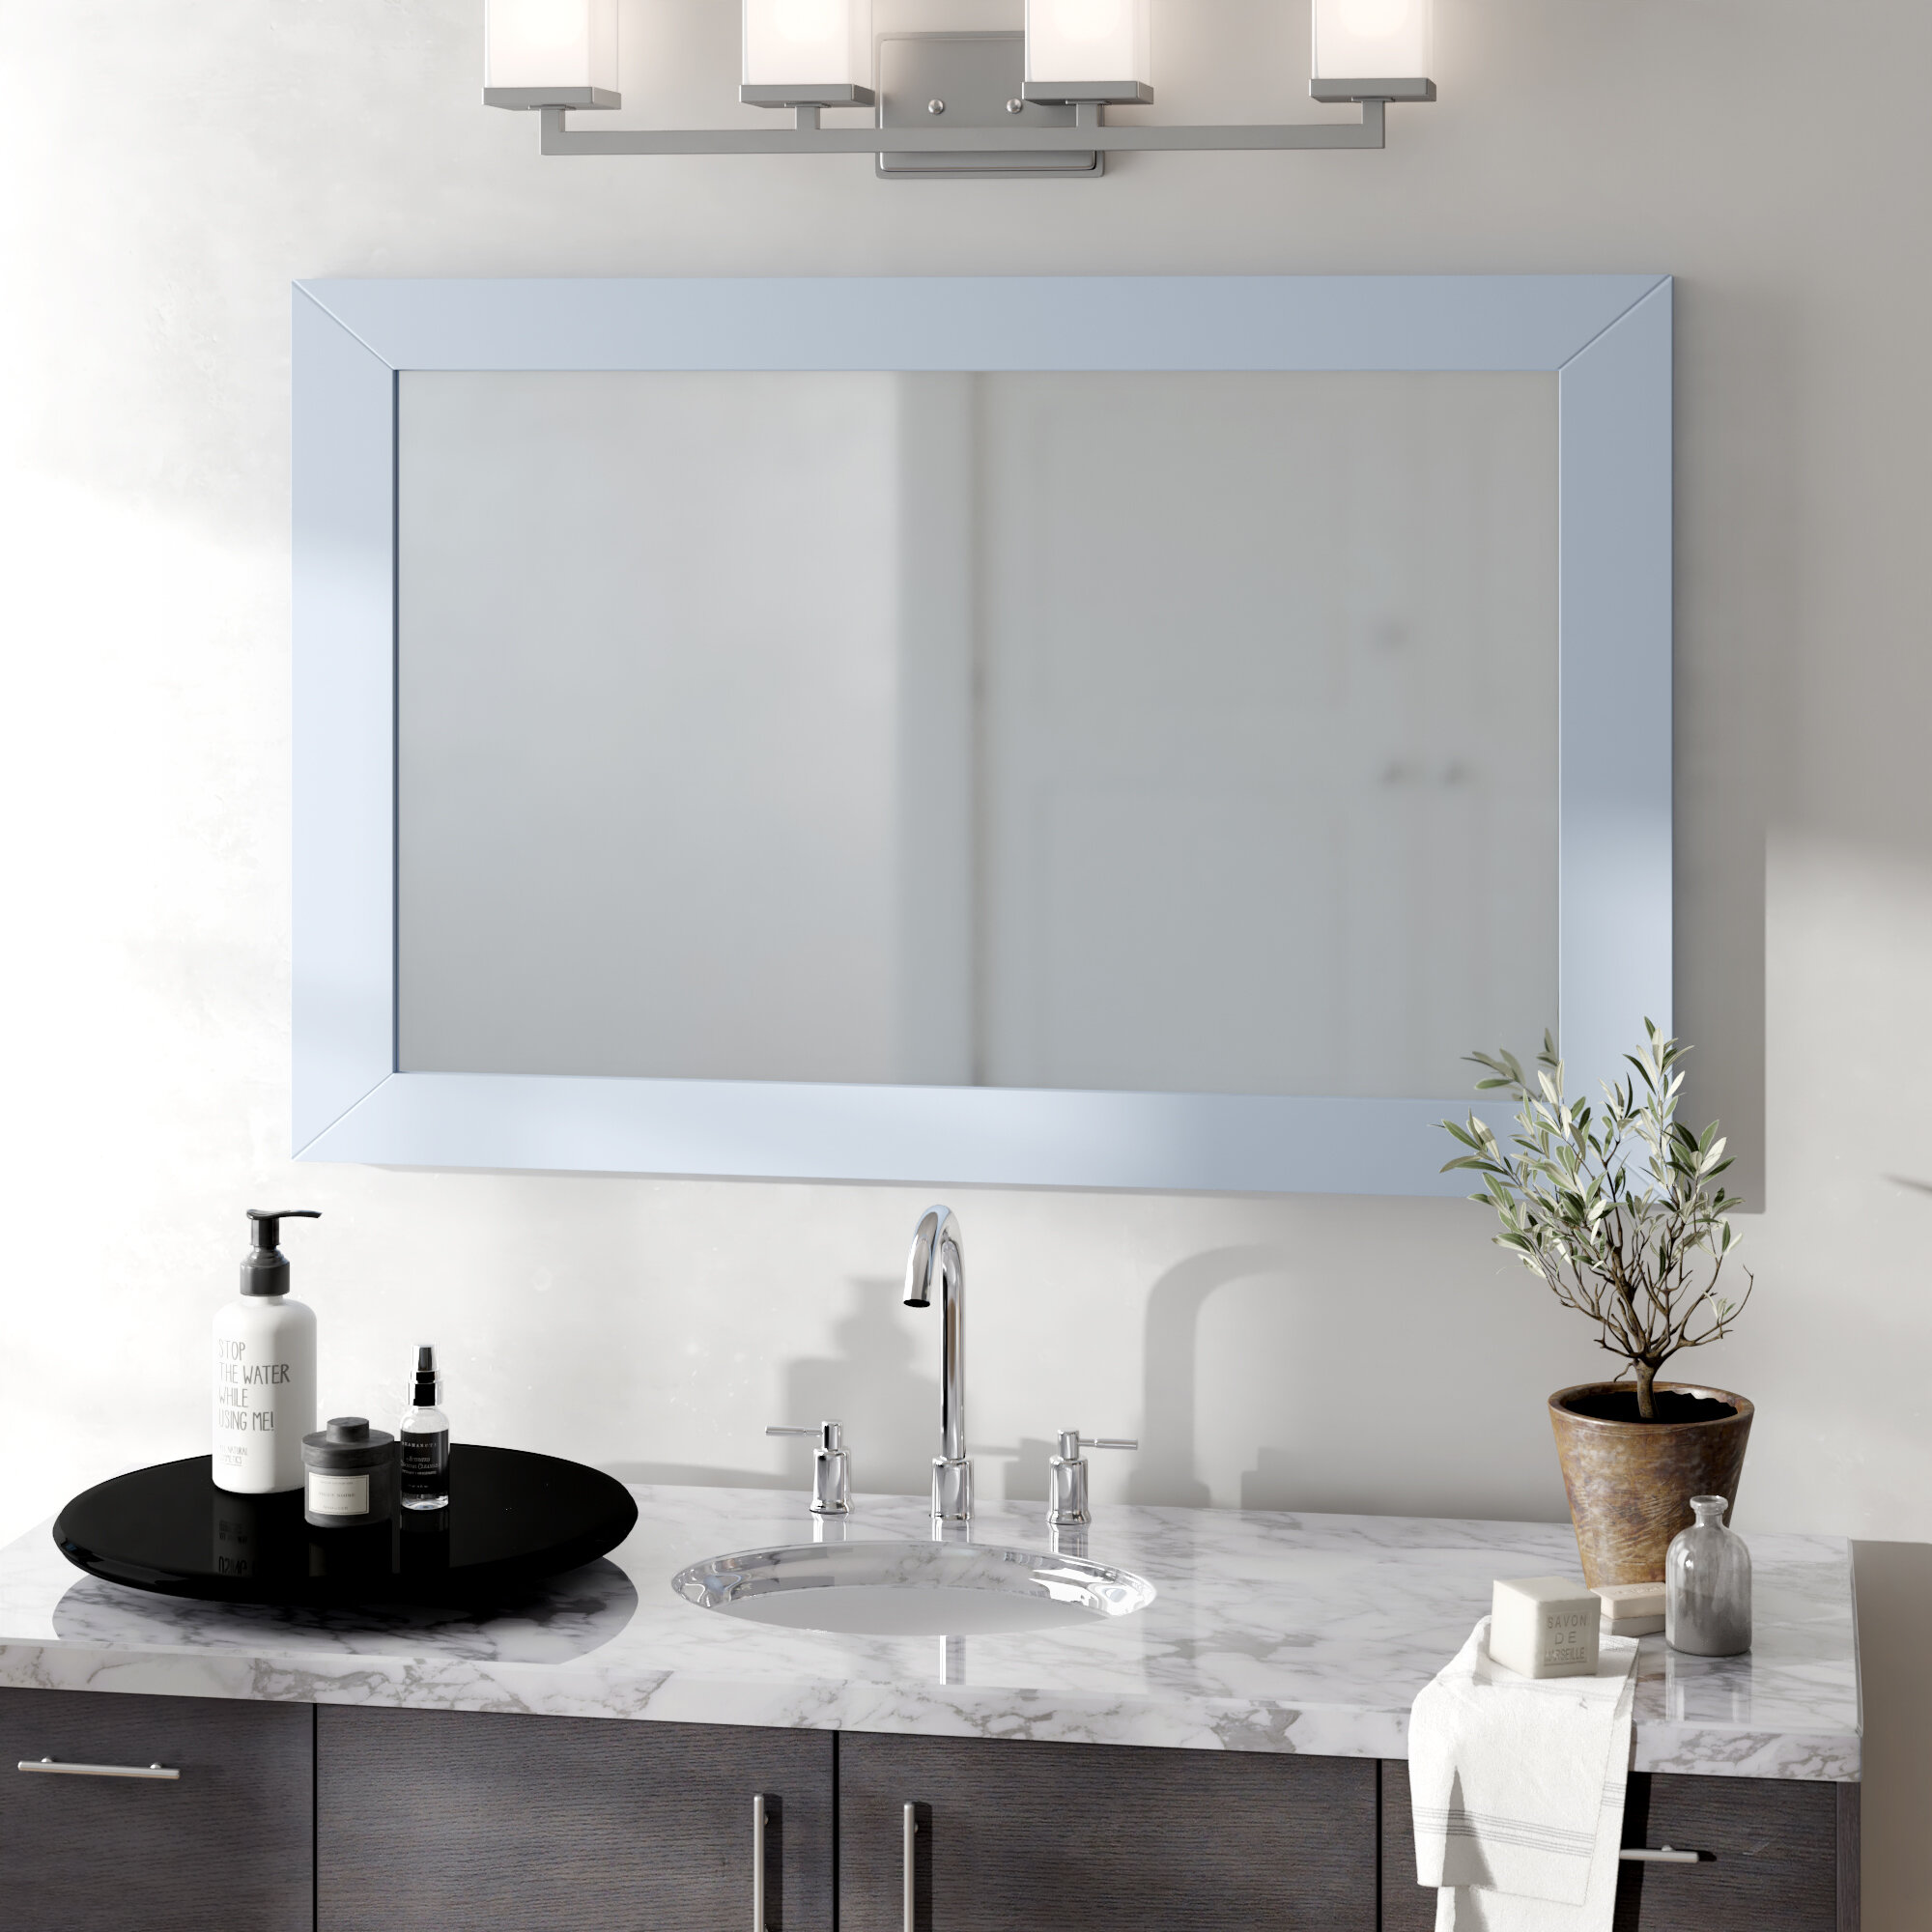 Brayden Studio Piccirillo Rectangle Framed Bathroom Wall Mirror Reviews Wayfair